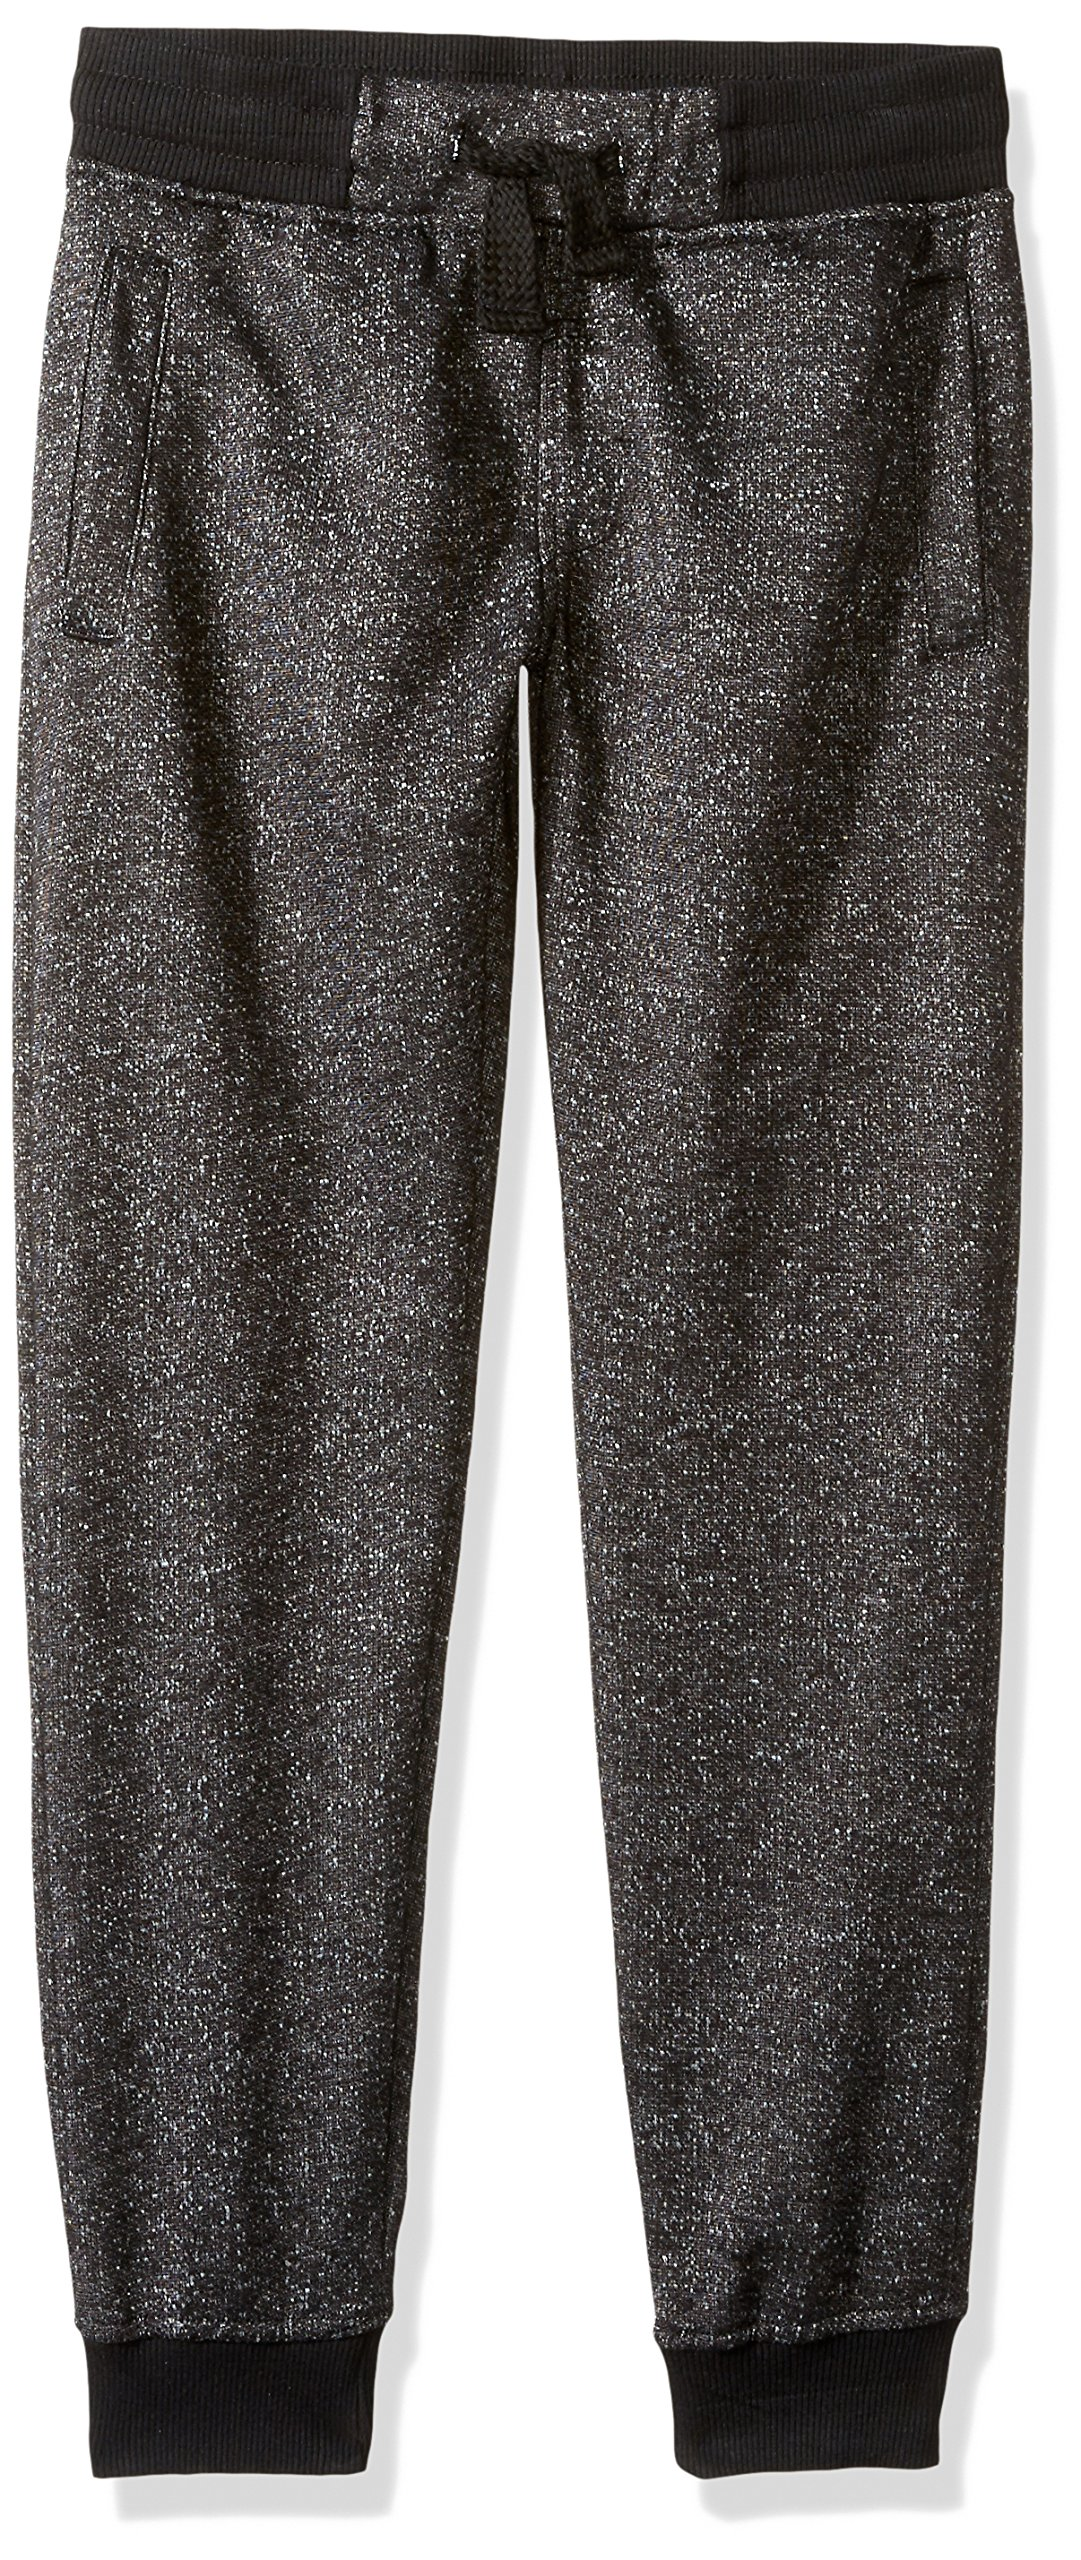 Southpole Big Boys' Jogger Pants in French Terry Basic Marled, Marled Black, Large